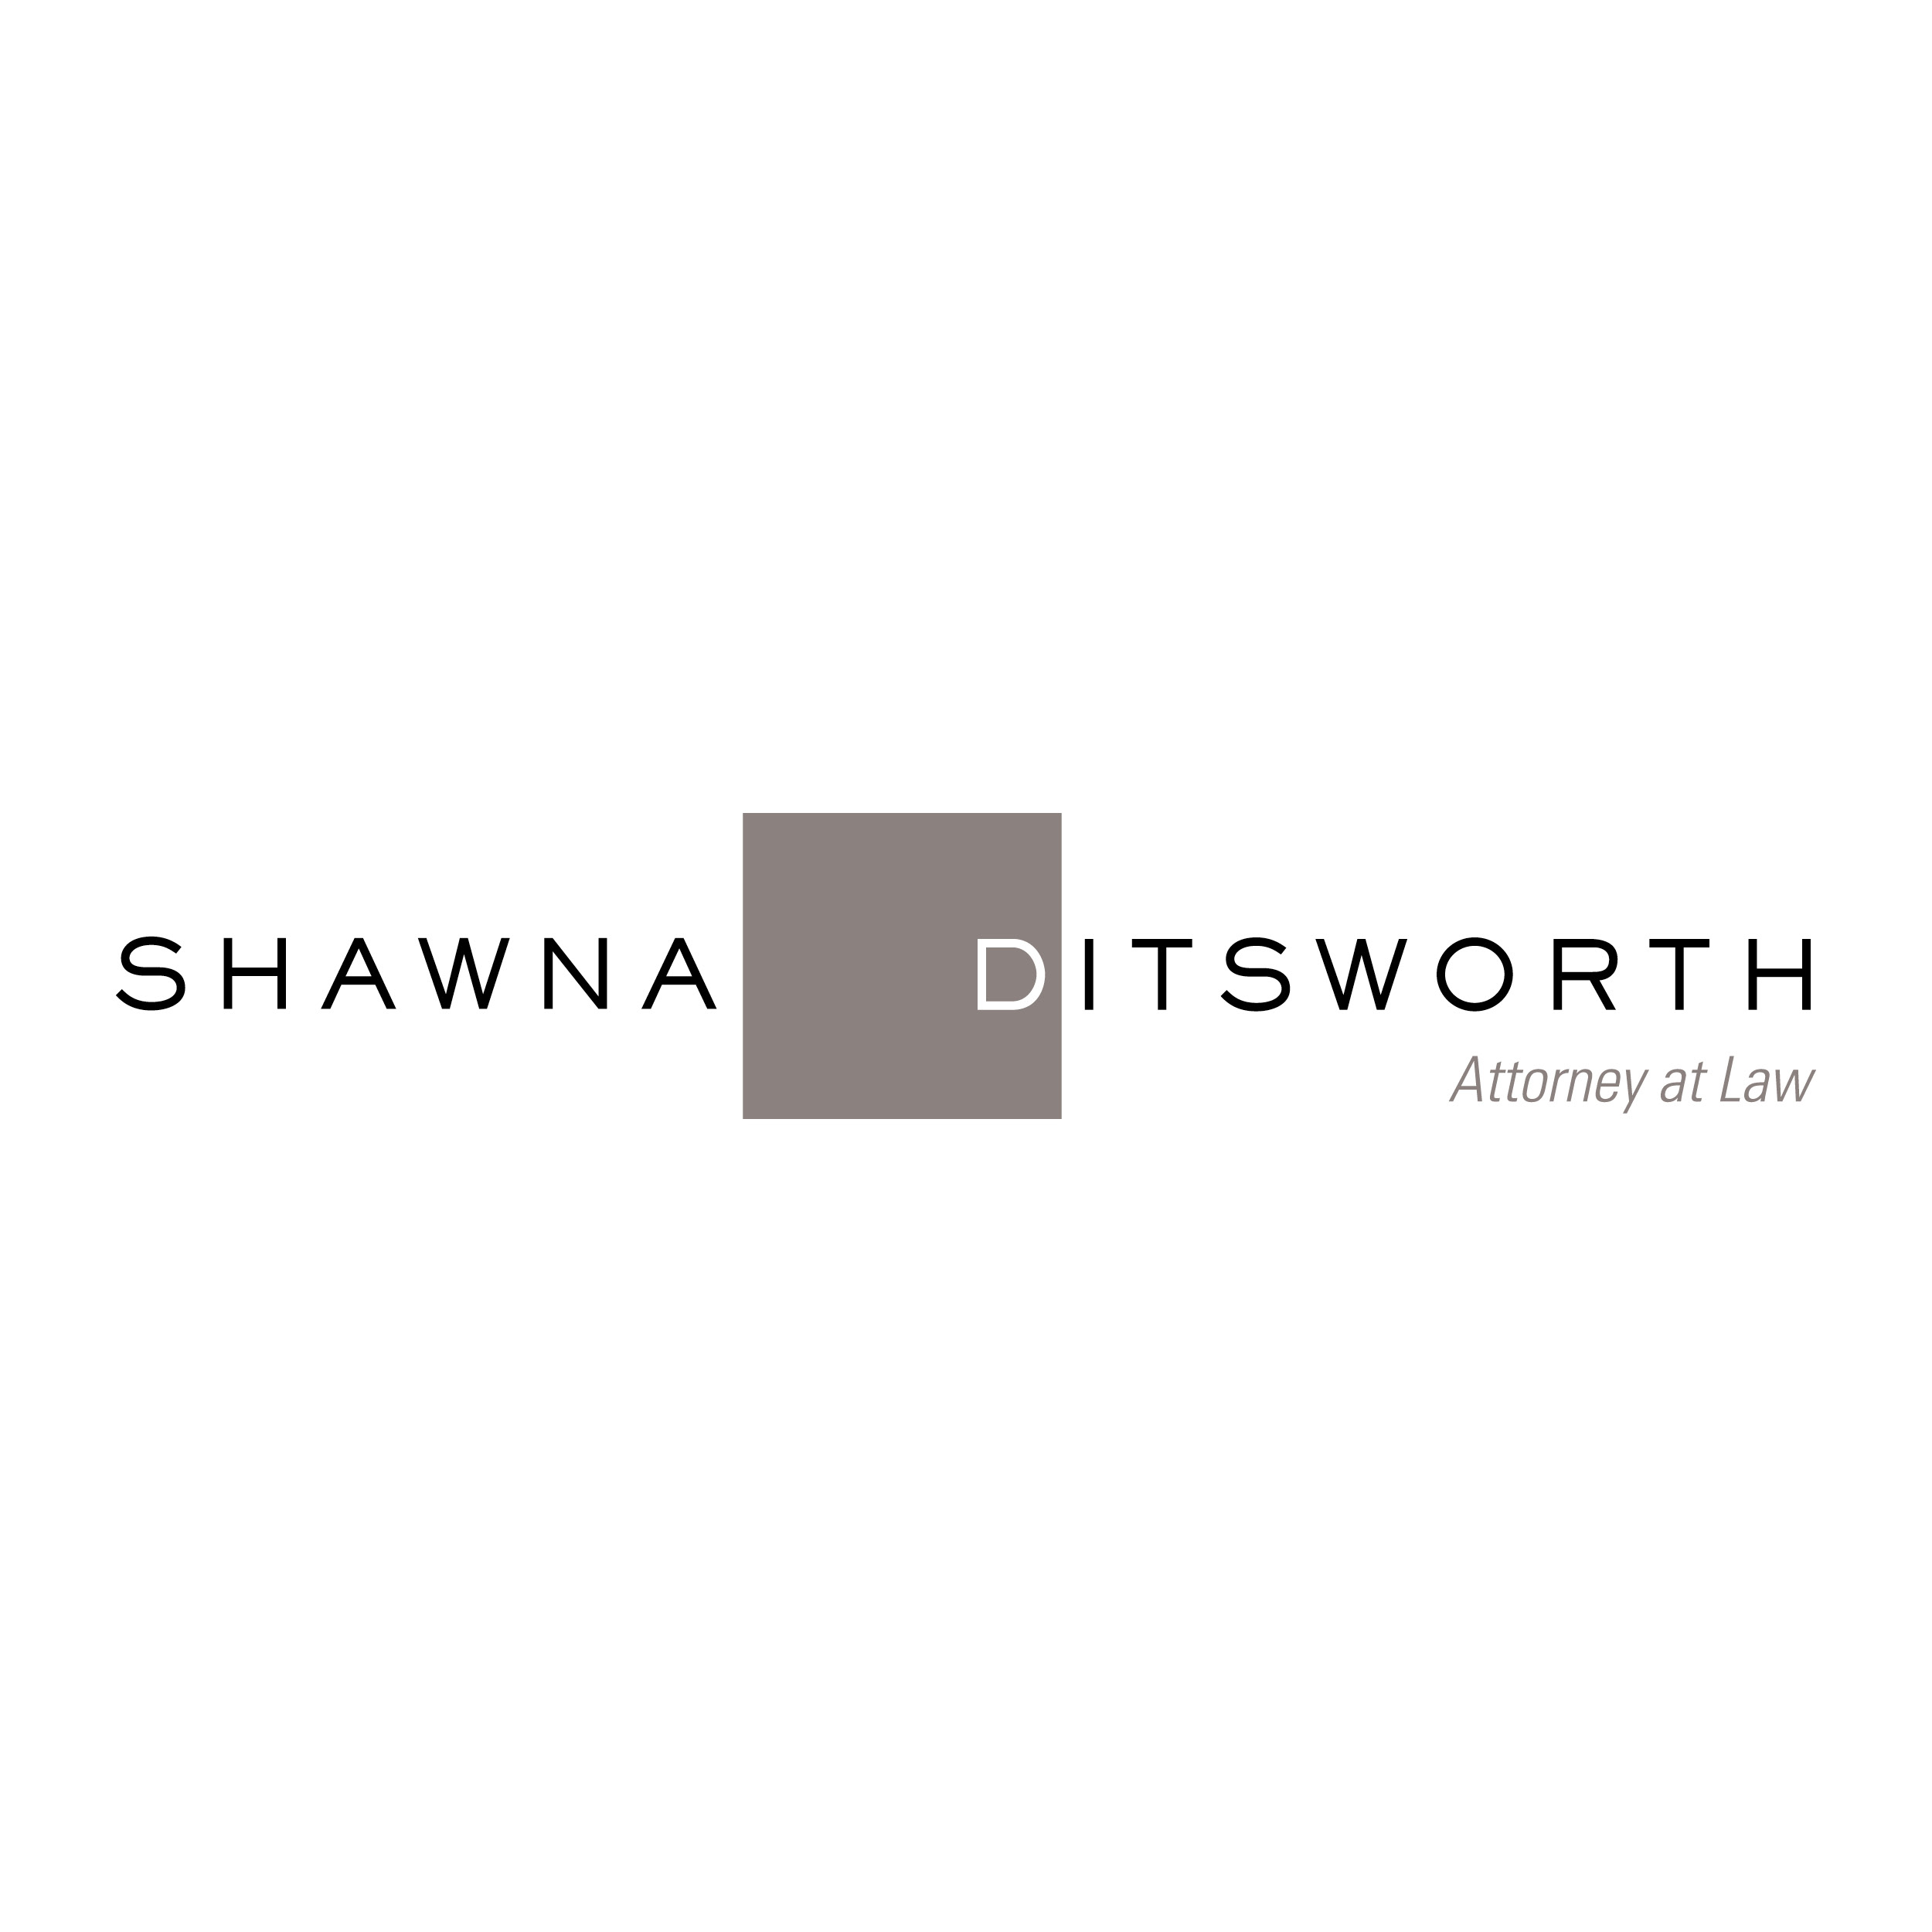 Shawna Ditsworth